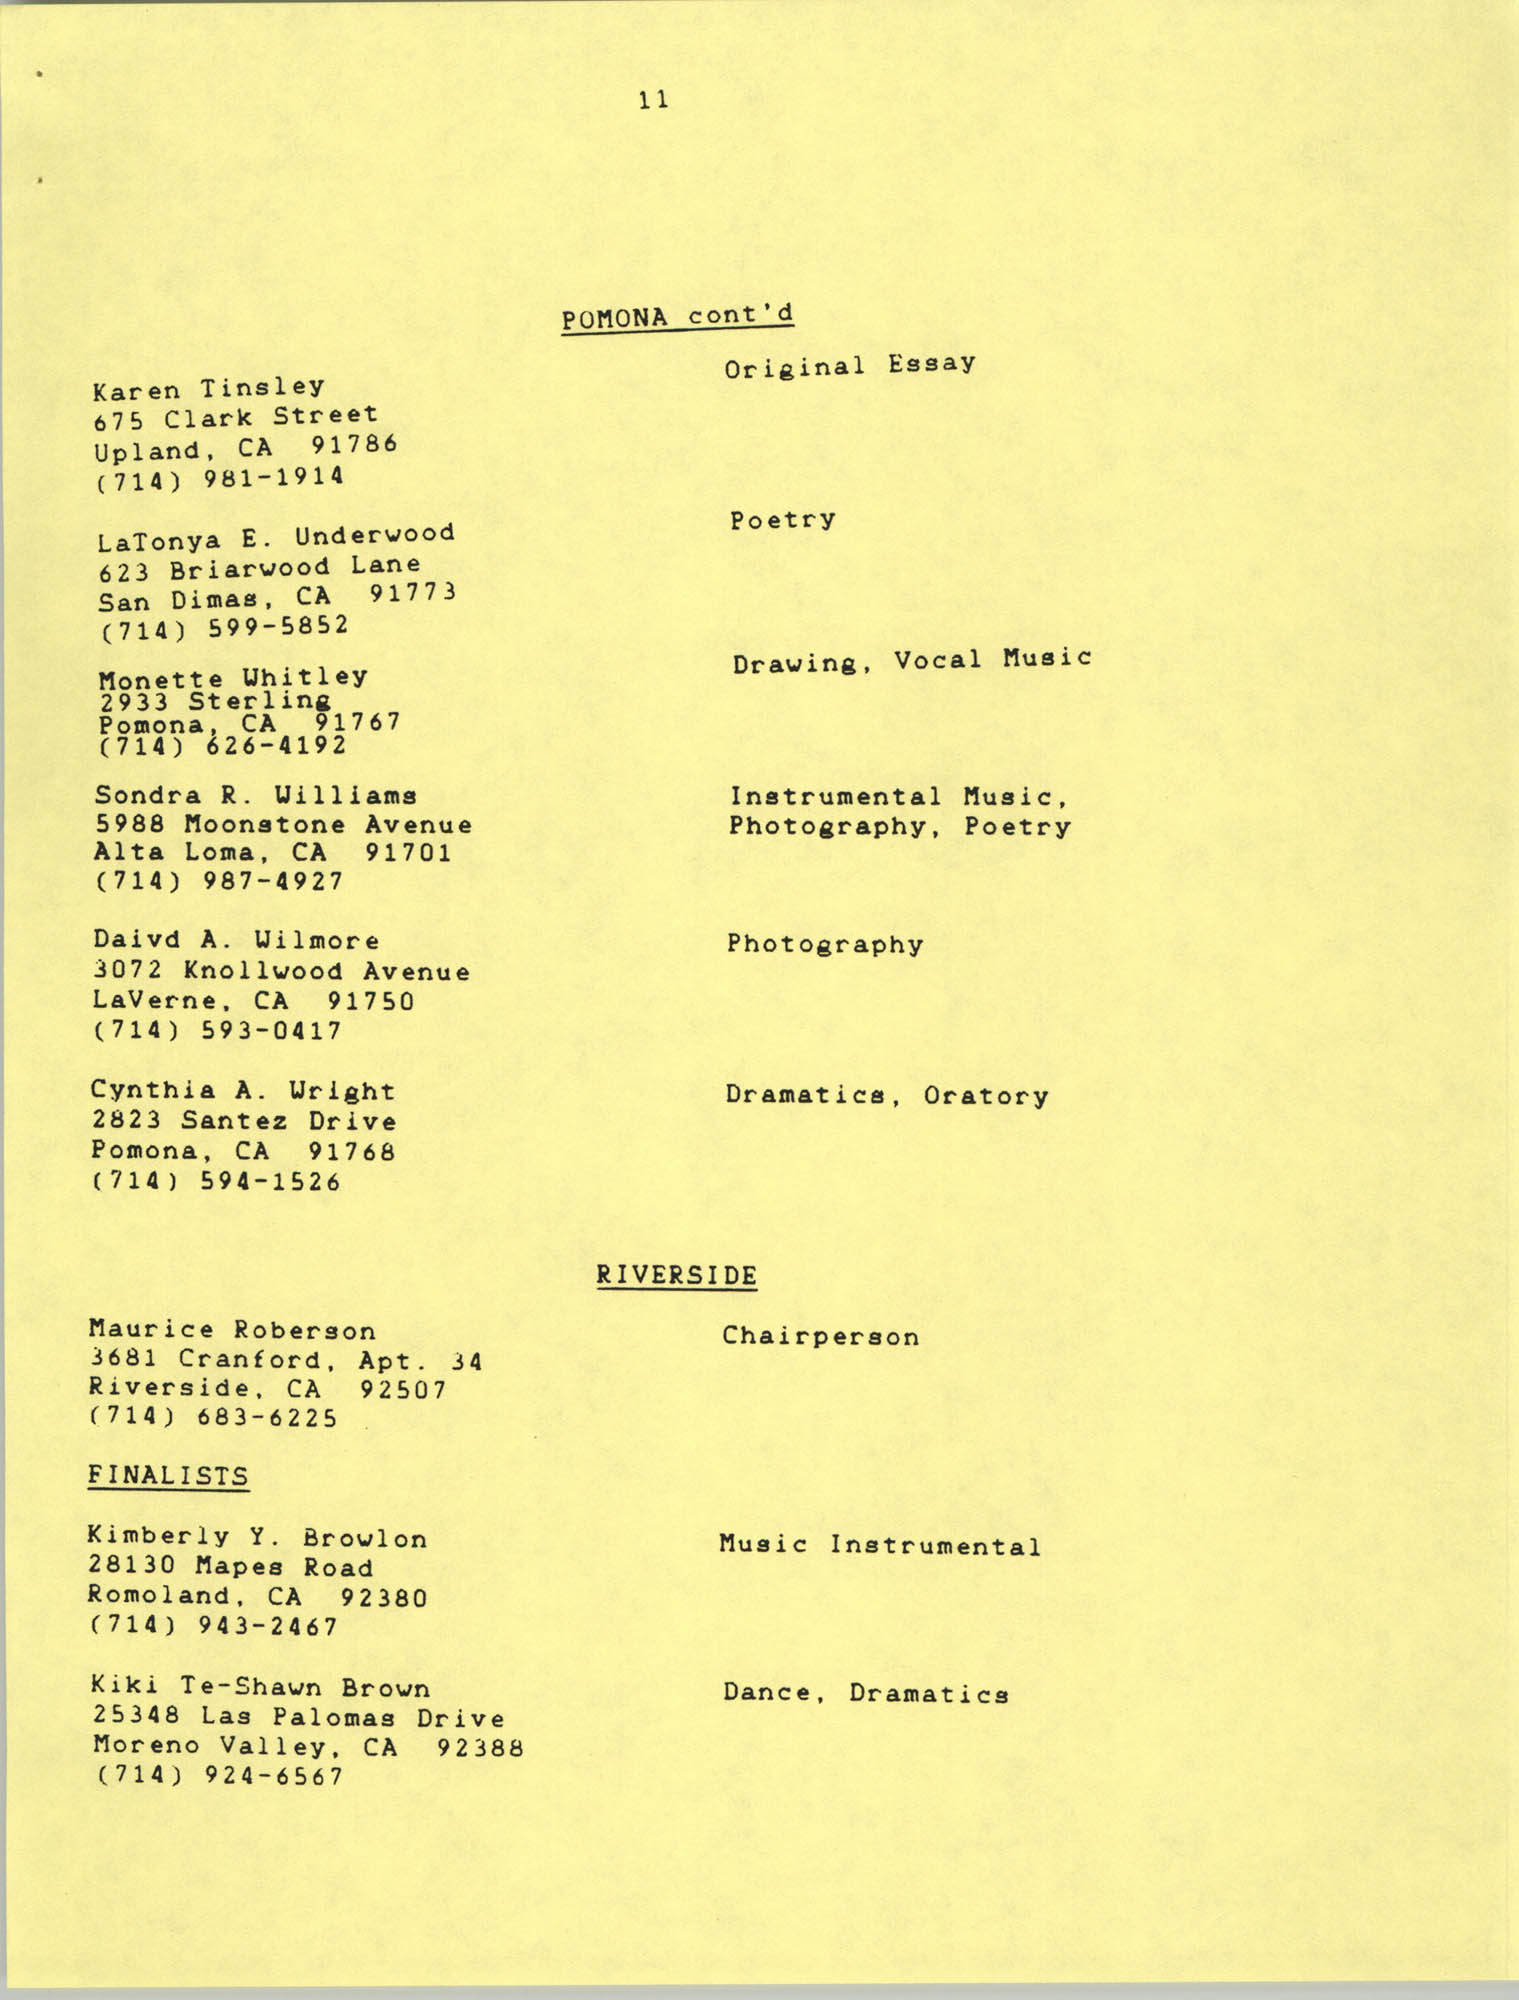 1987 Act-So Contestants, NAACP West Coast Region, Page 11